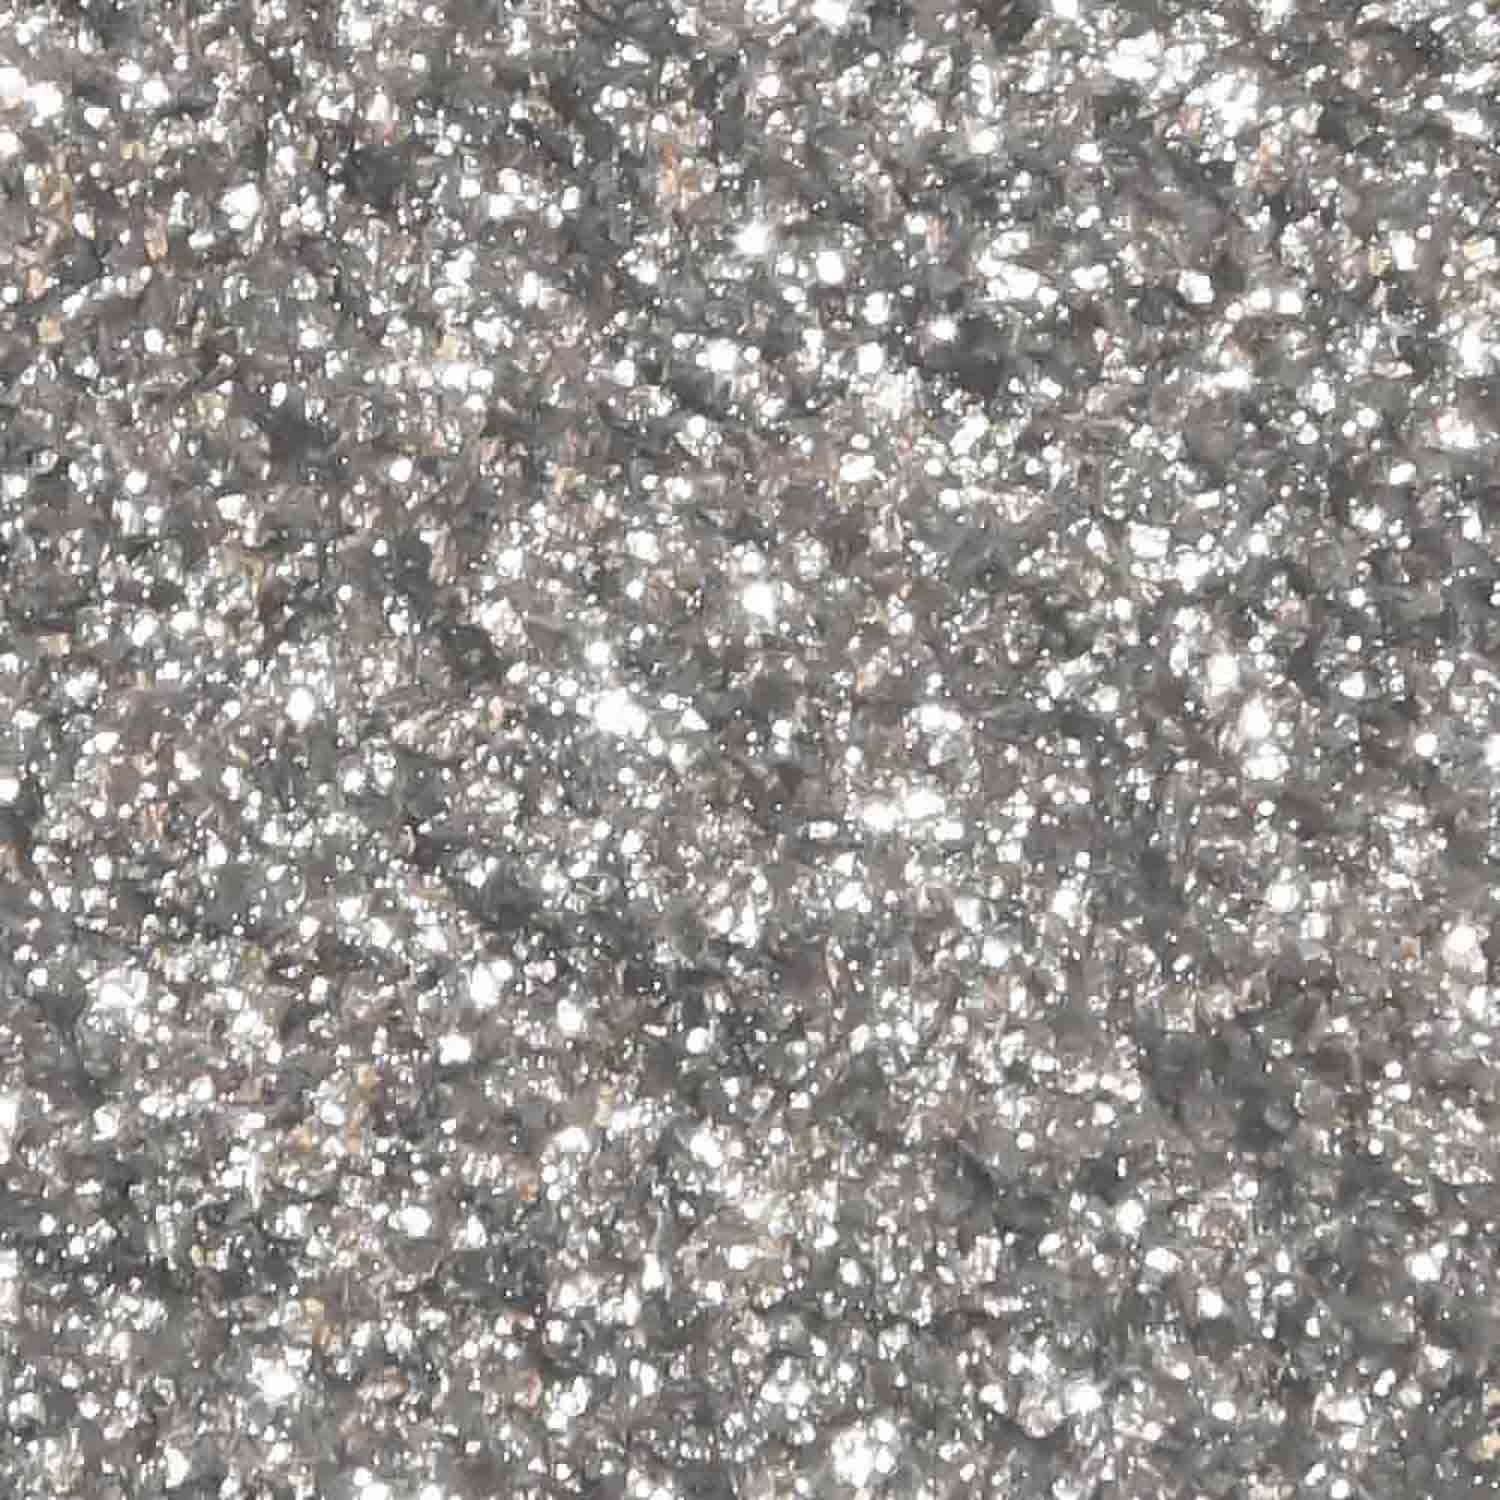 Silver Edible Jewel Dust®